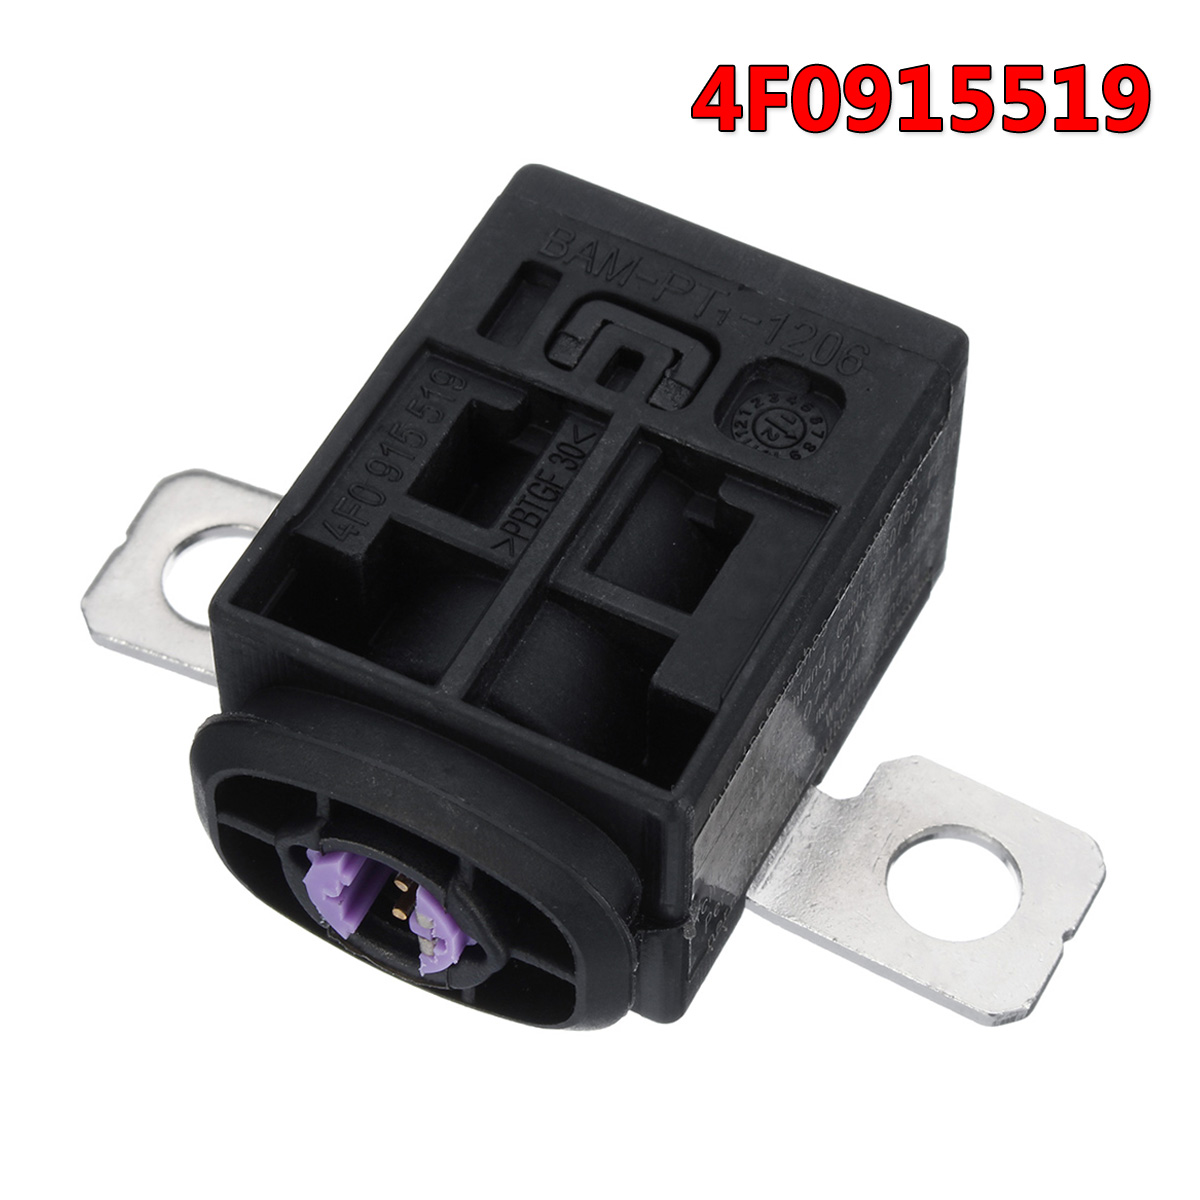 small resolution of 4f0915519 battery fuse box cut off overload protection trip for audi q5 a5 a7 a6 vw skoda in fuses from automobiles motorcycles on aliexpress com